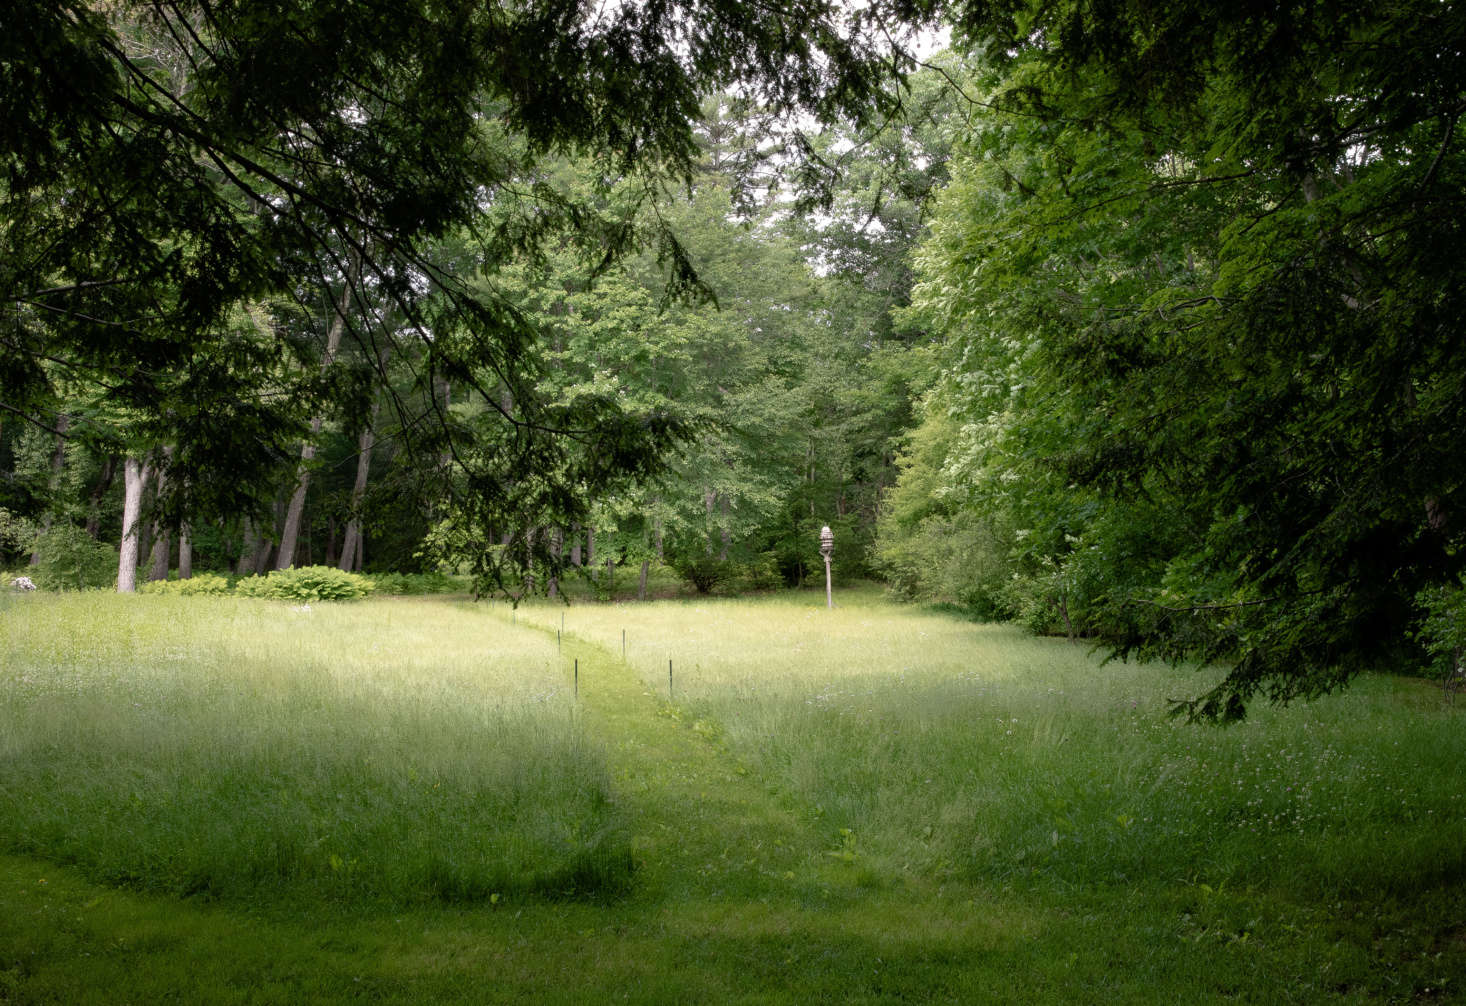 , a mown path provides a link and transition to the surrounding woodlands beyond. Photograph by Justine Hand for Gardenista, from Garden Visit: A Revolutionary Landscape in Concord, MA.